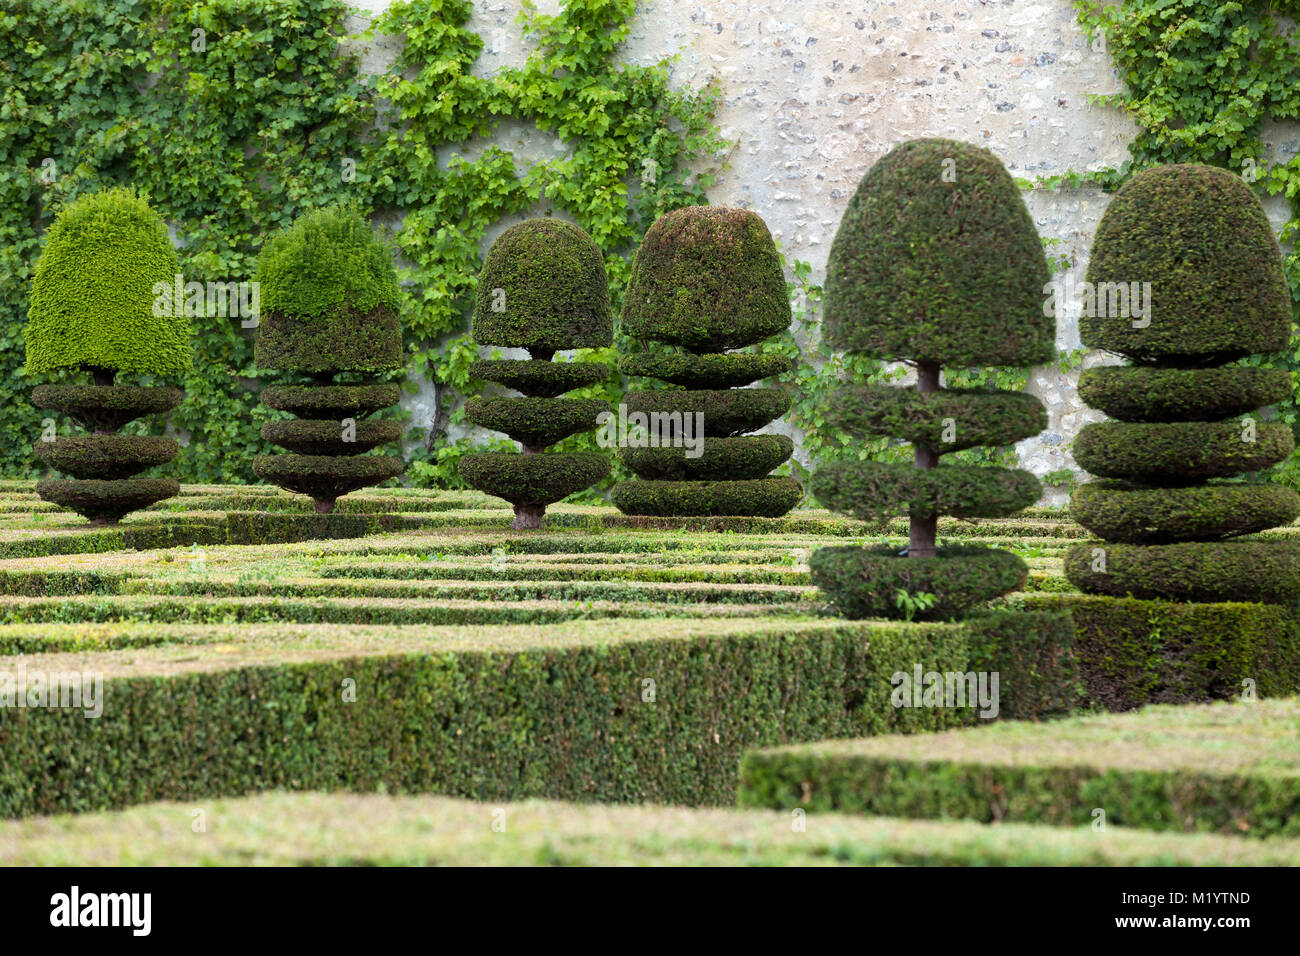 Splendid, decorative gardens at castles in France Stock Photo ...